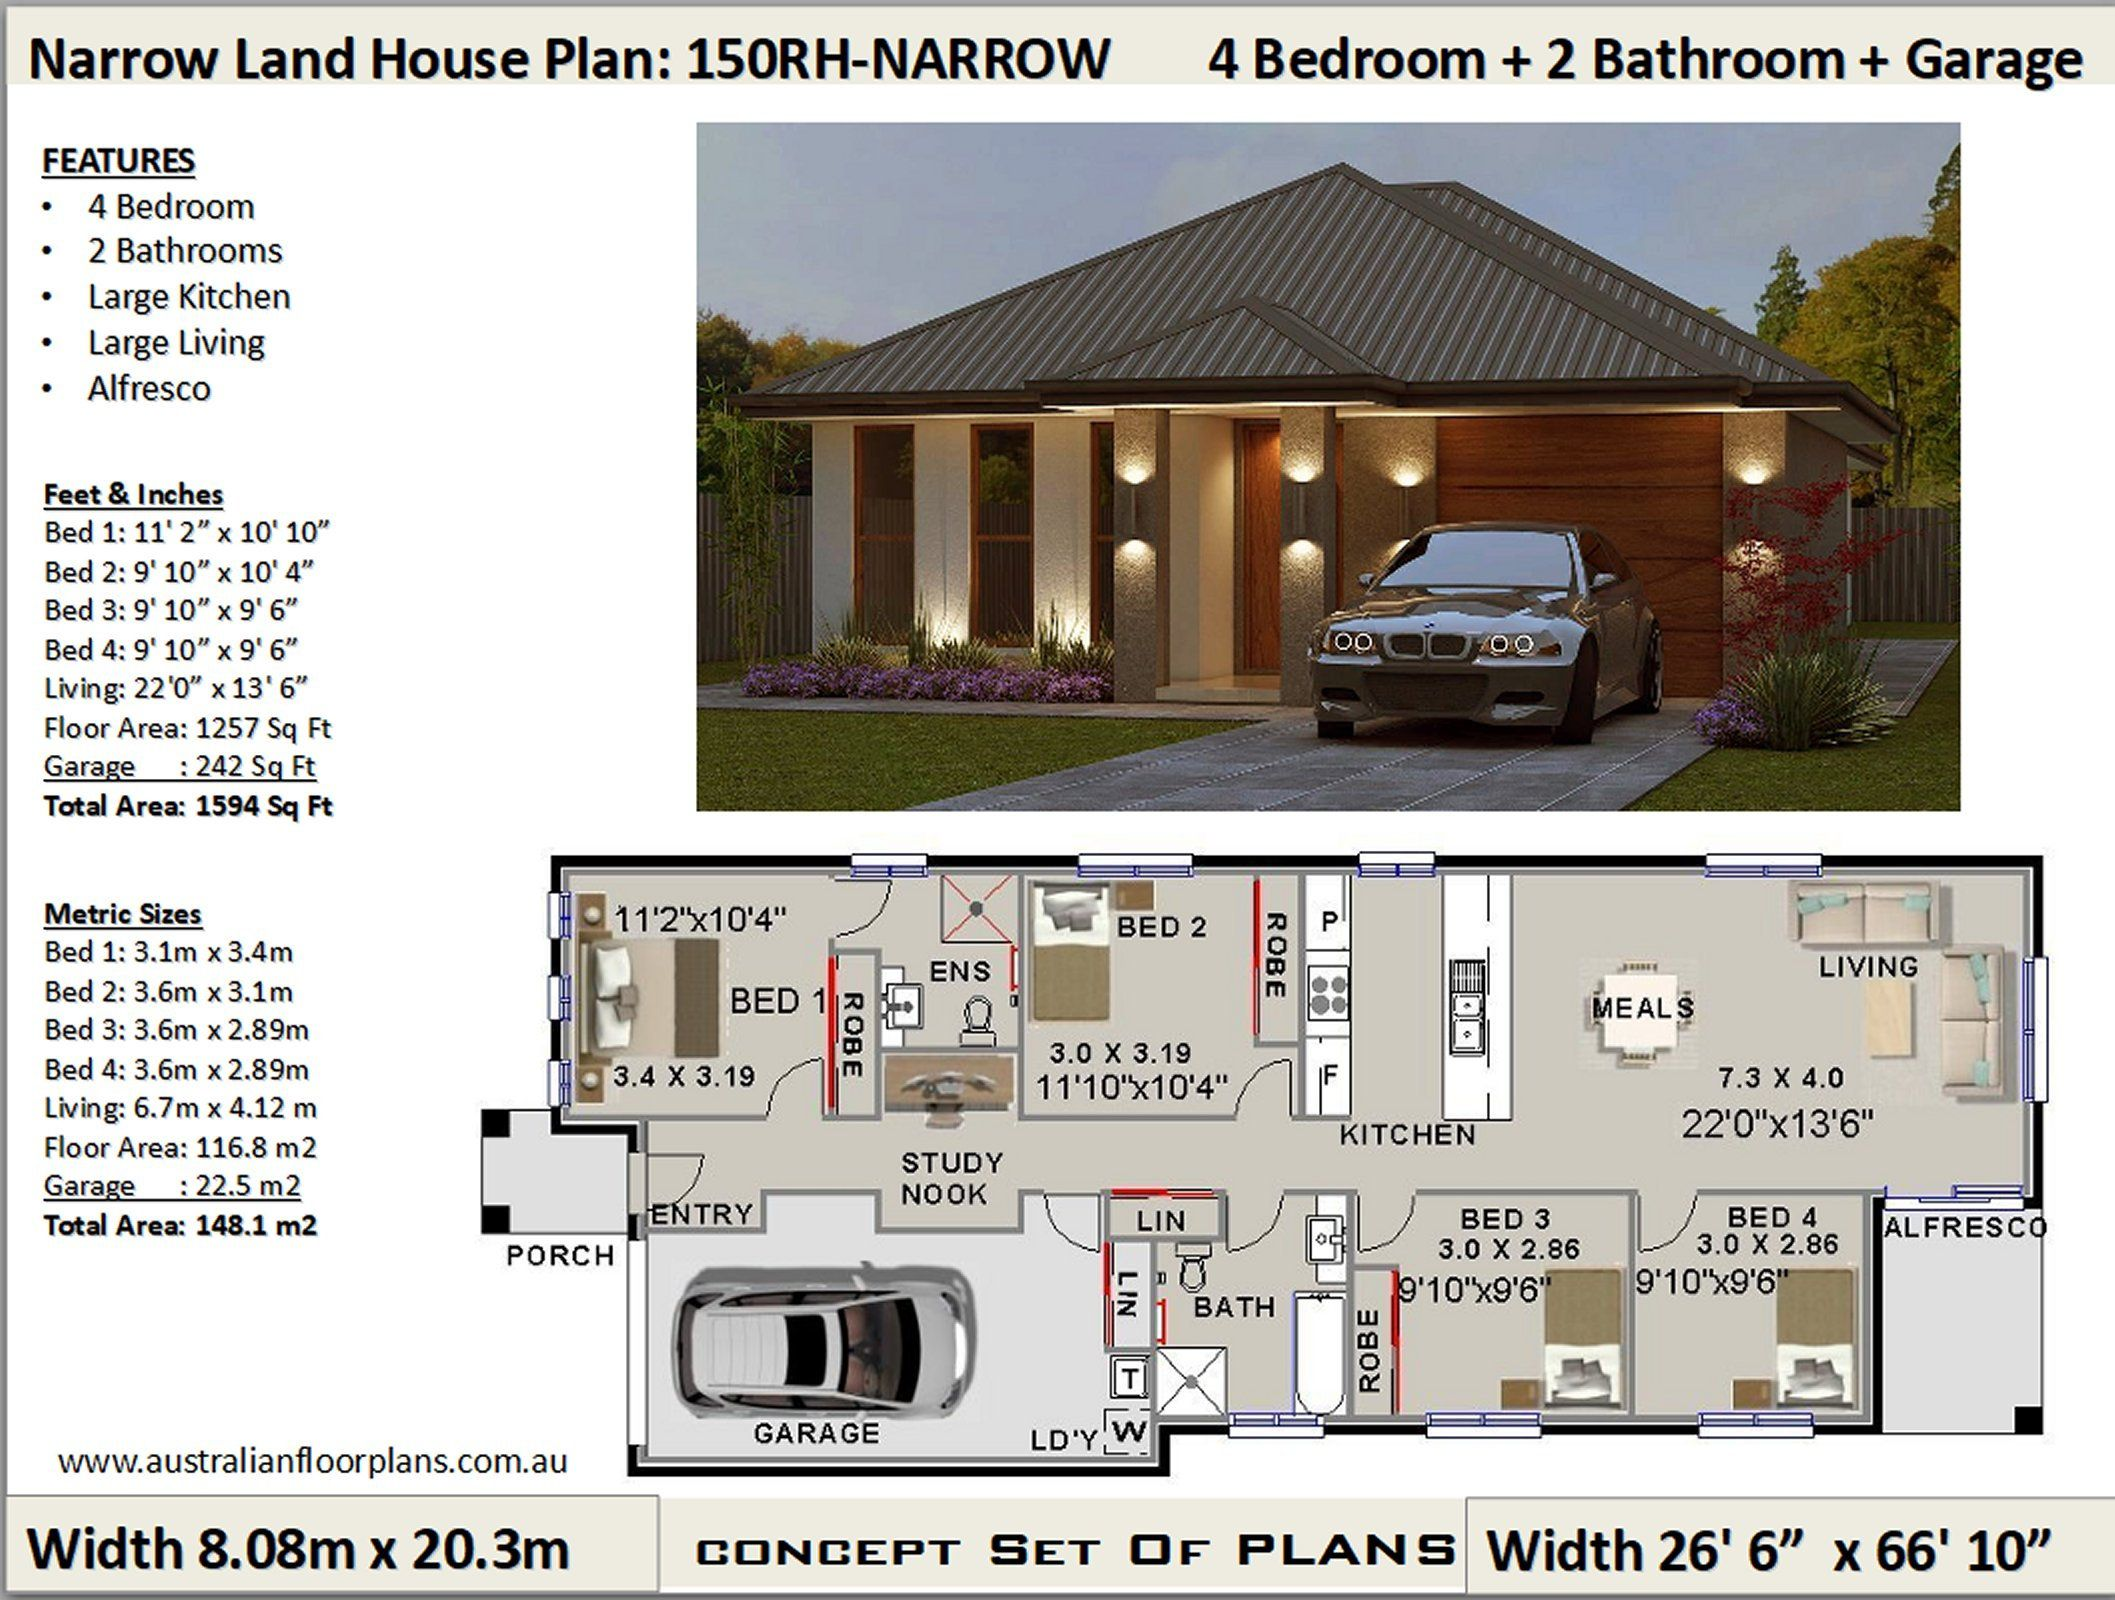 Small Land 4 Bed House Plans 4 Bedroom Design Australia Etsy House Plans Australia House Plans Porch House Plans